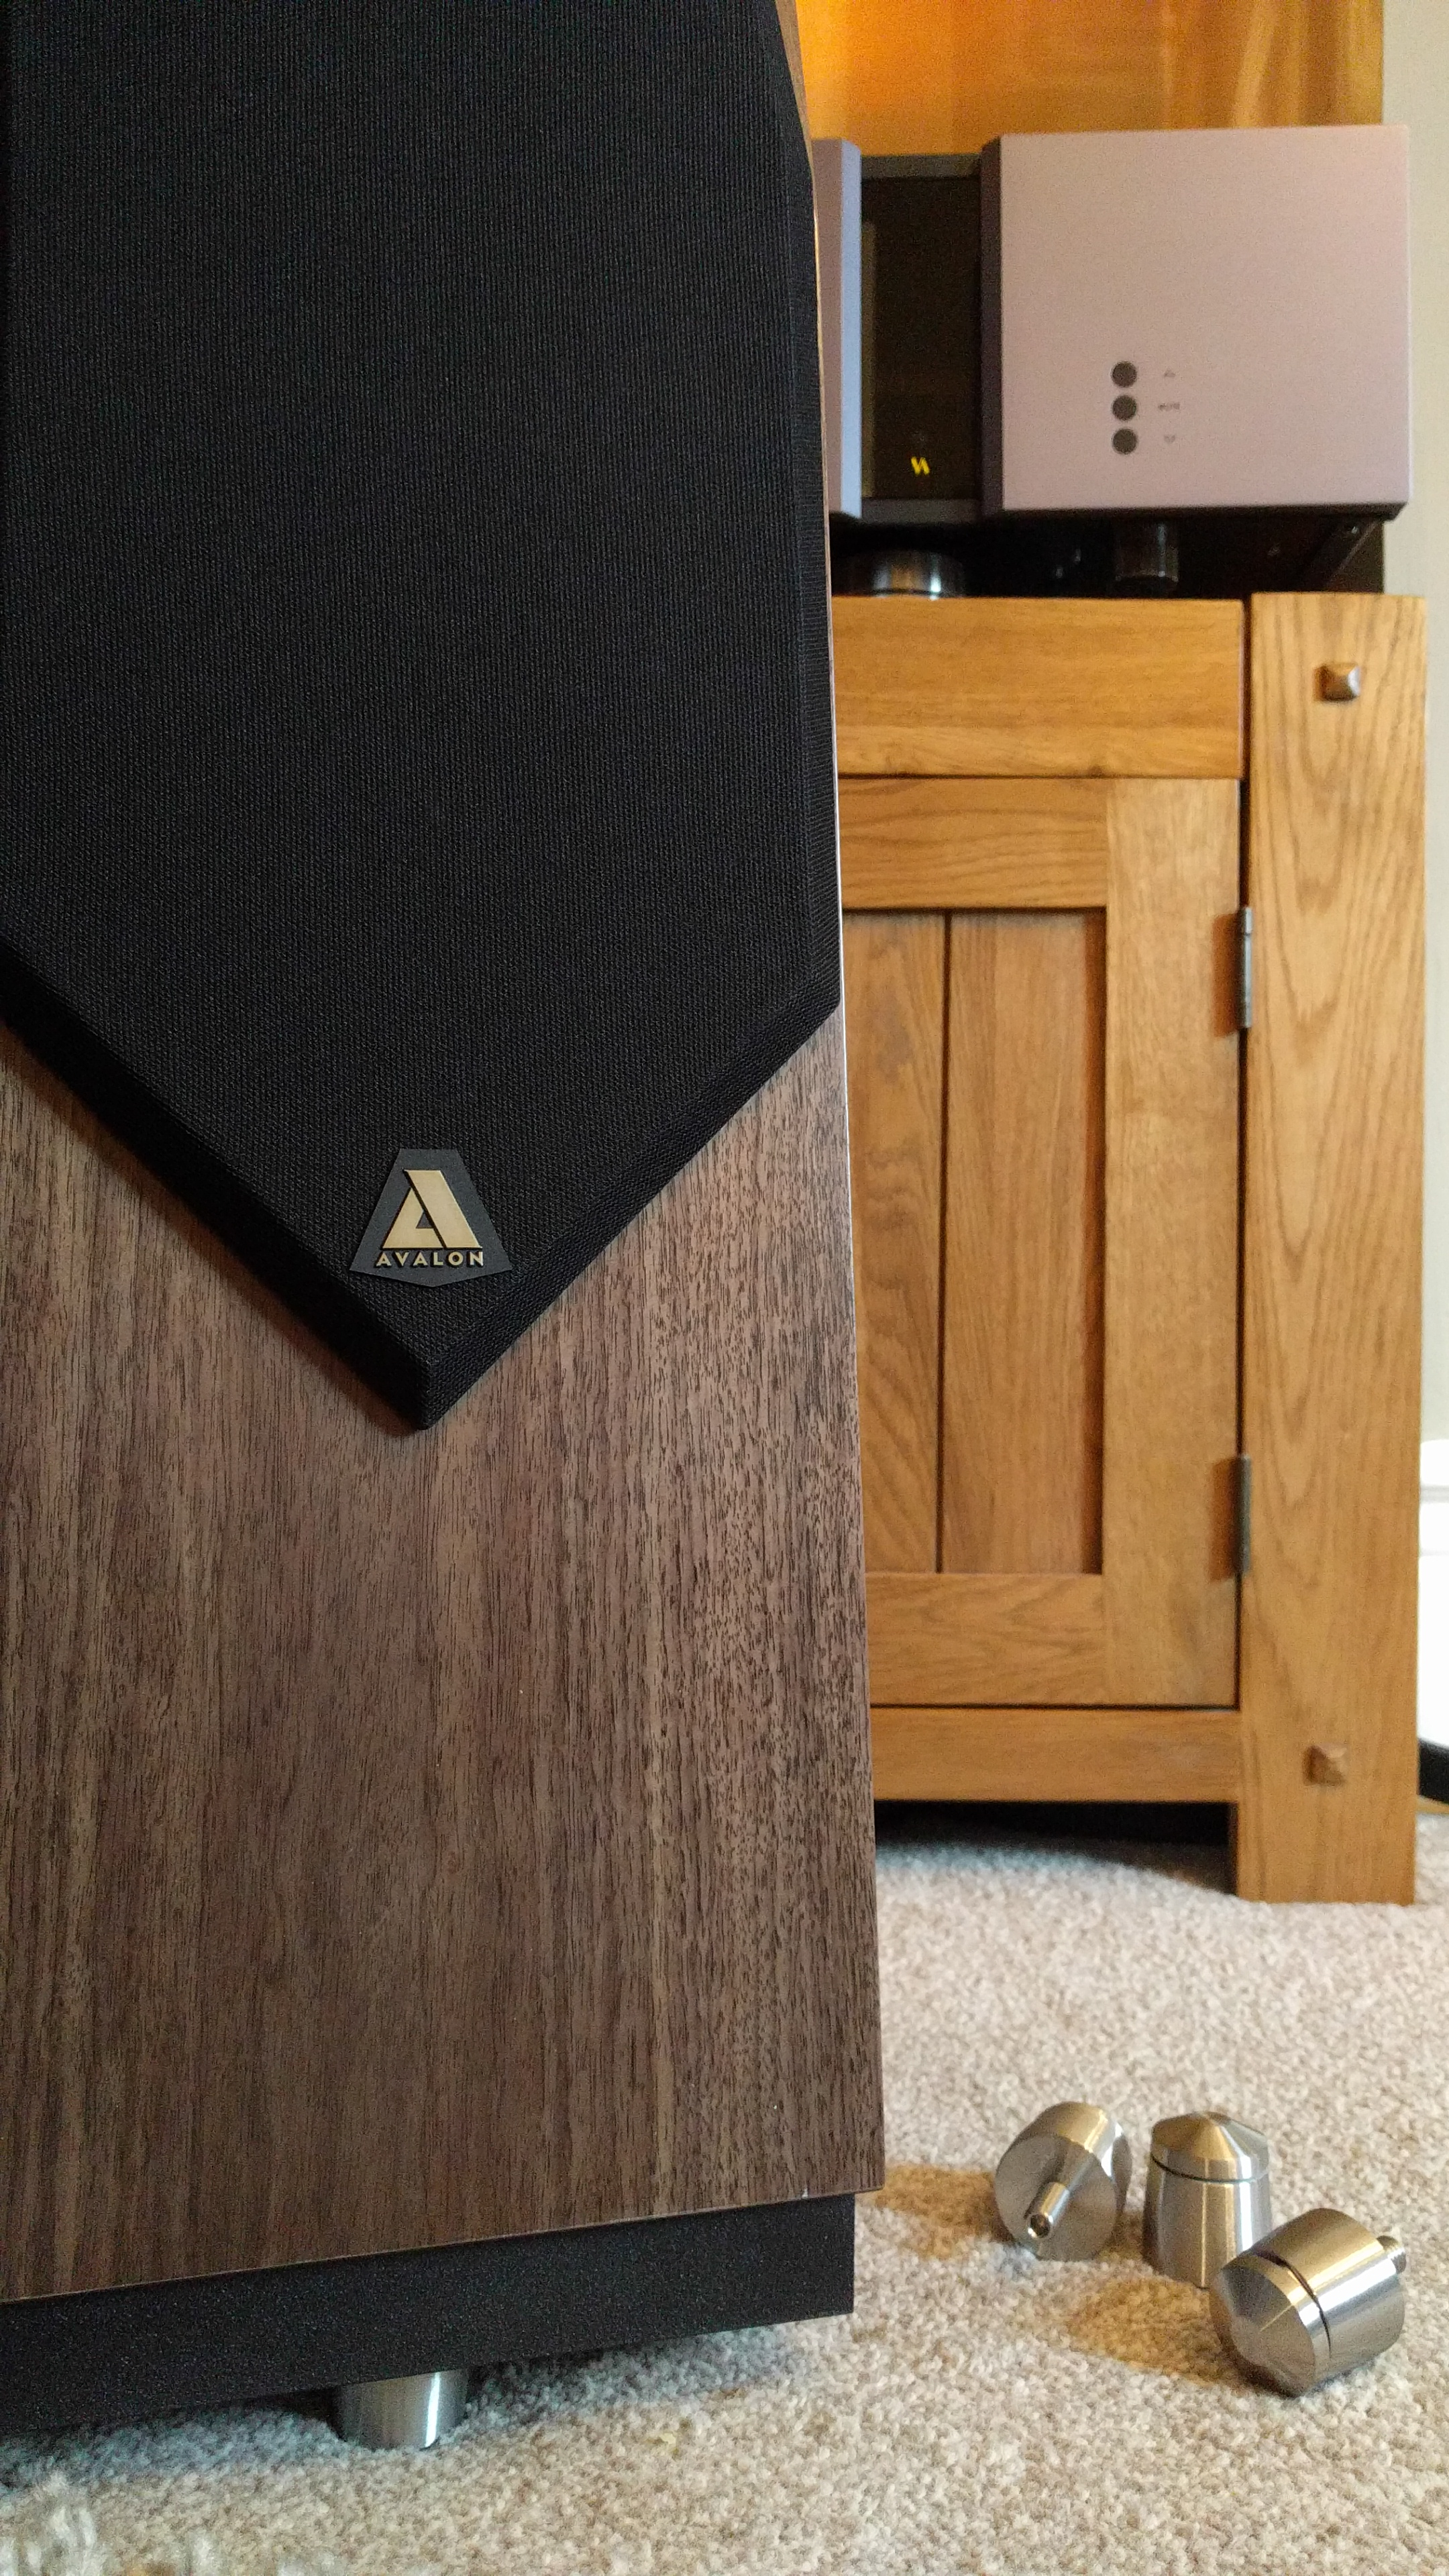 Avalon Idea & Vitus RI-100 @ Audio Therapy